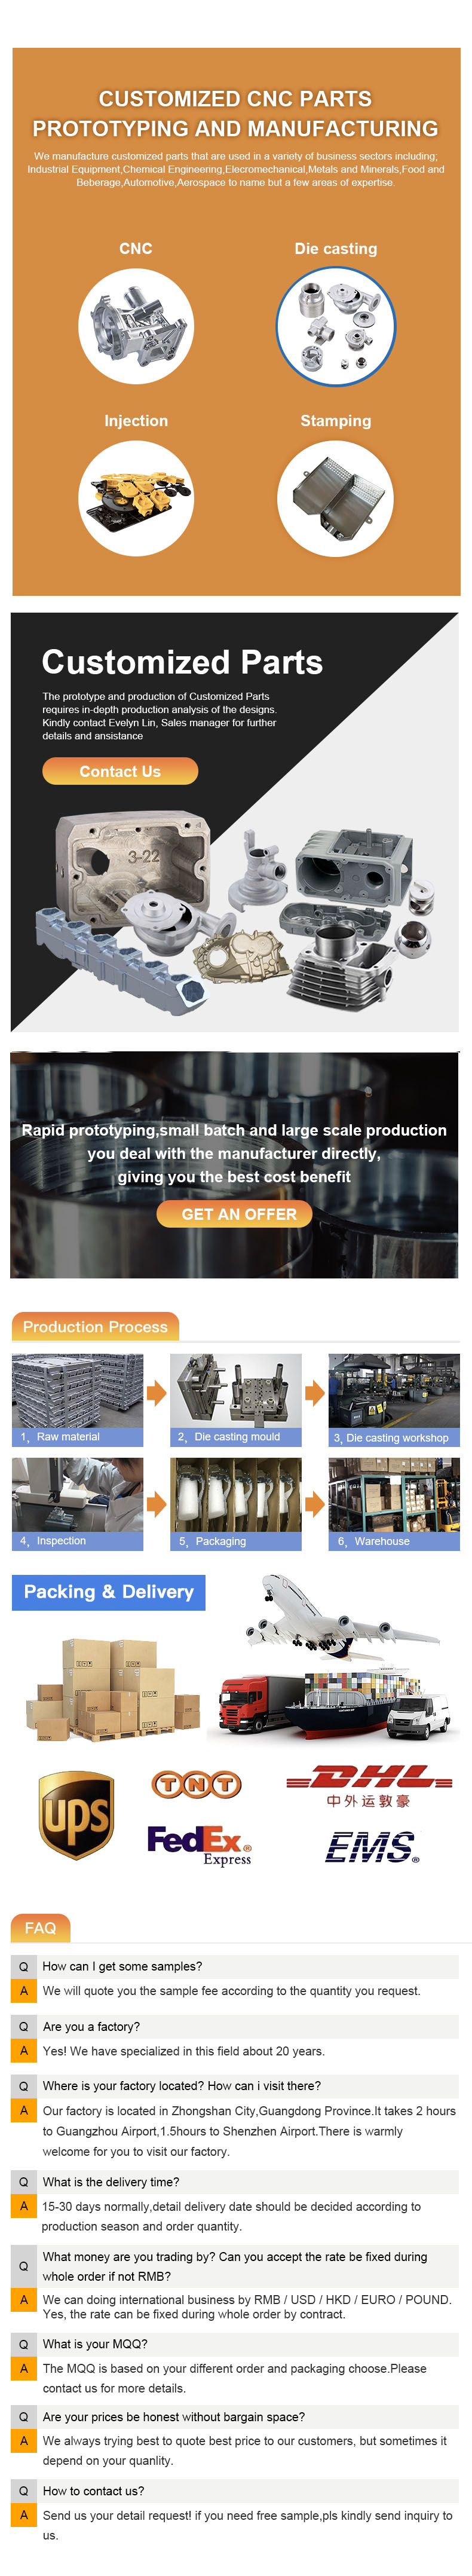 die-casting-companies,CNC MACHINING PARTS,PRECISION CNC MACHINING PARTS,CNC ALUMINUM PARTS,Machined Products,CNC Machined Products,BoYang Hardware Products